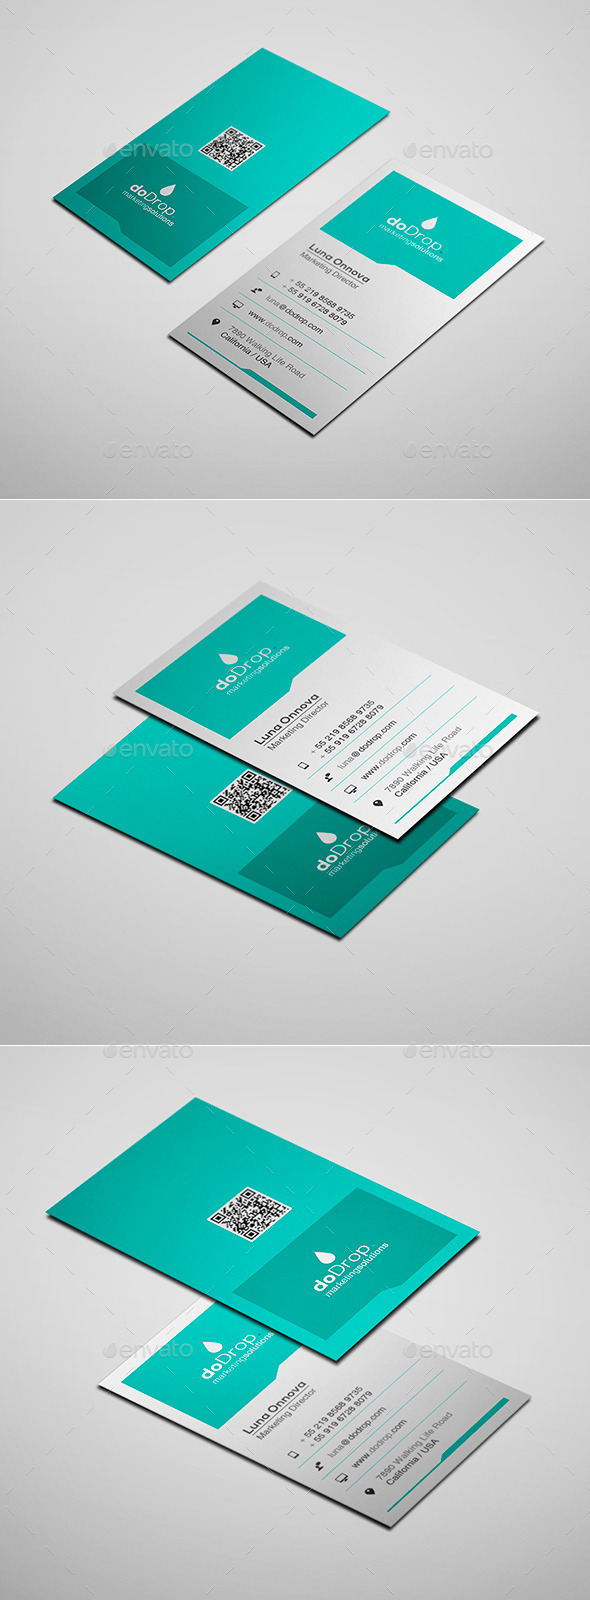 GraphicRiver Business Card Vol 06 11448818